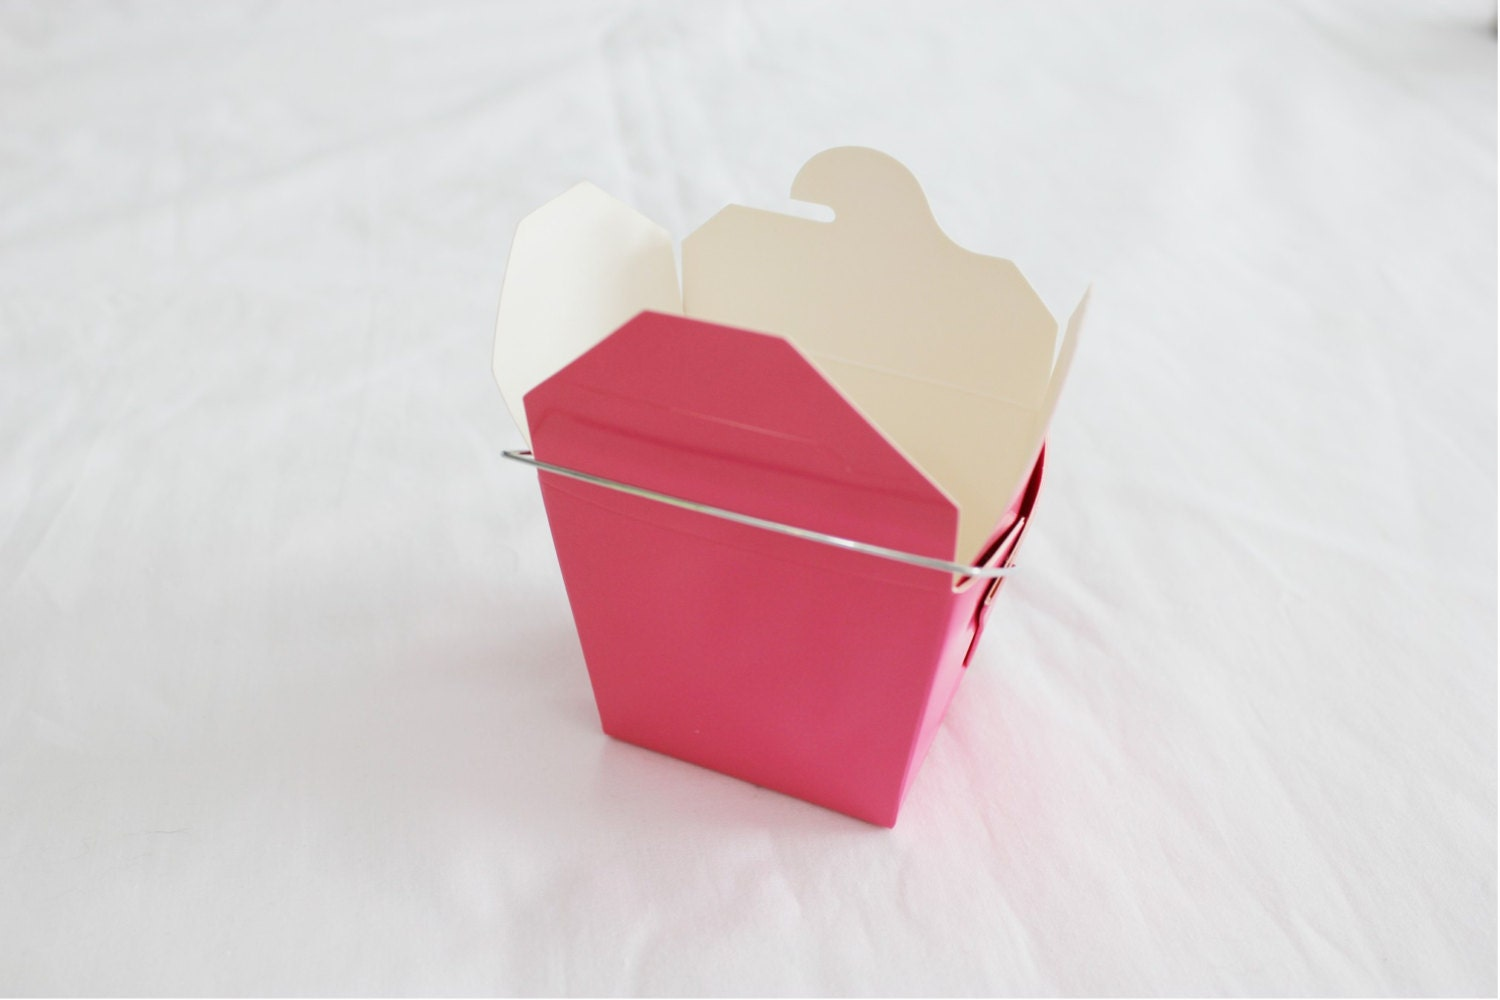 25 Small Hot Pink Chinese Take Out Boxes for Party Favors or more ...